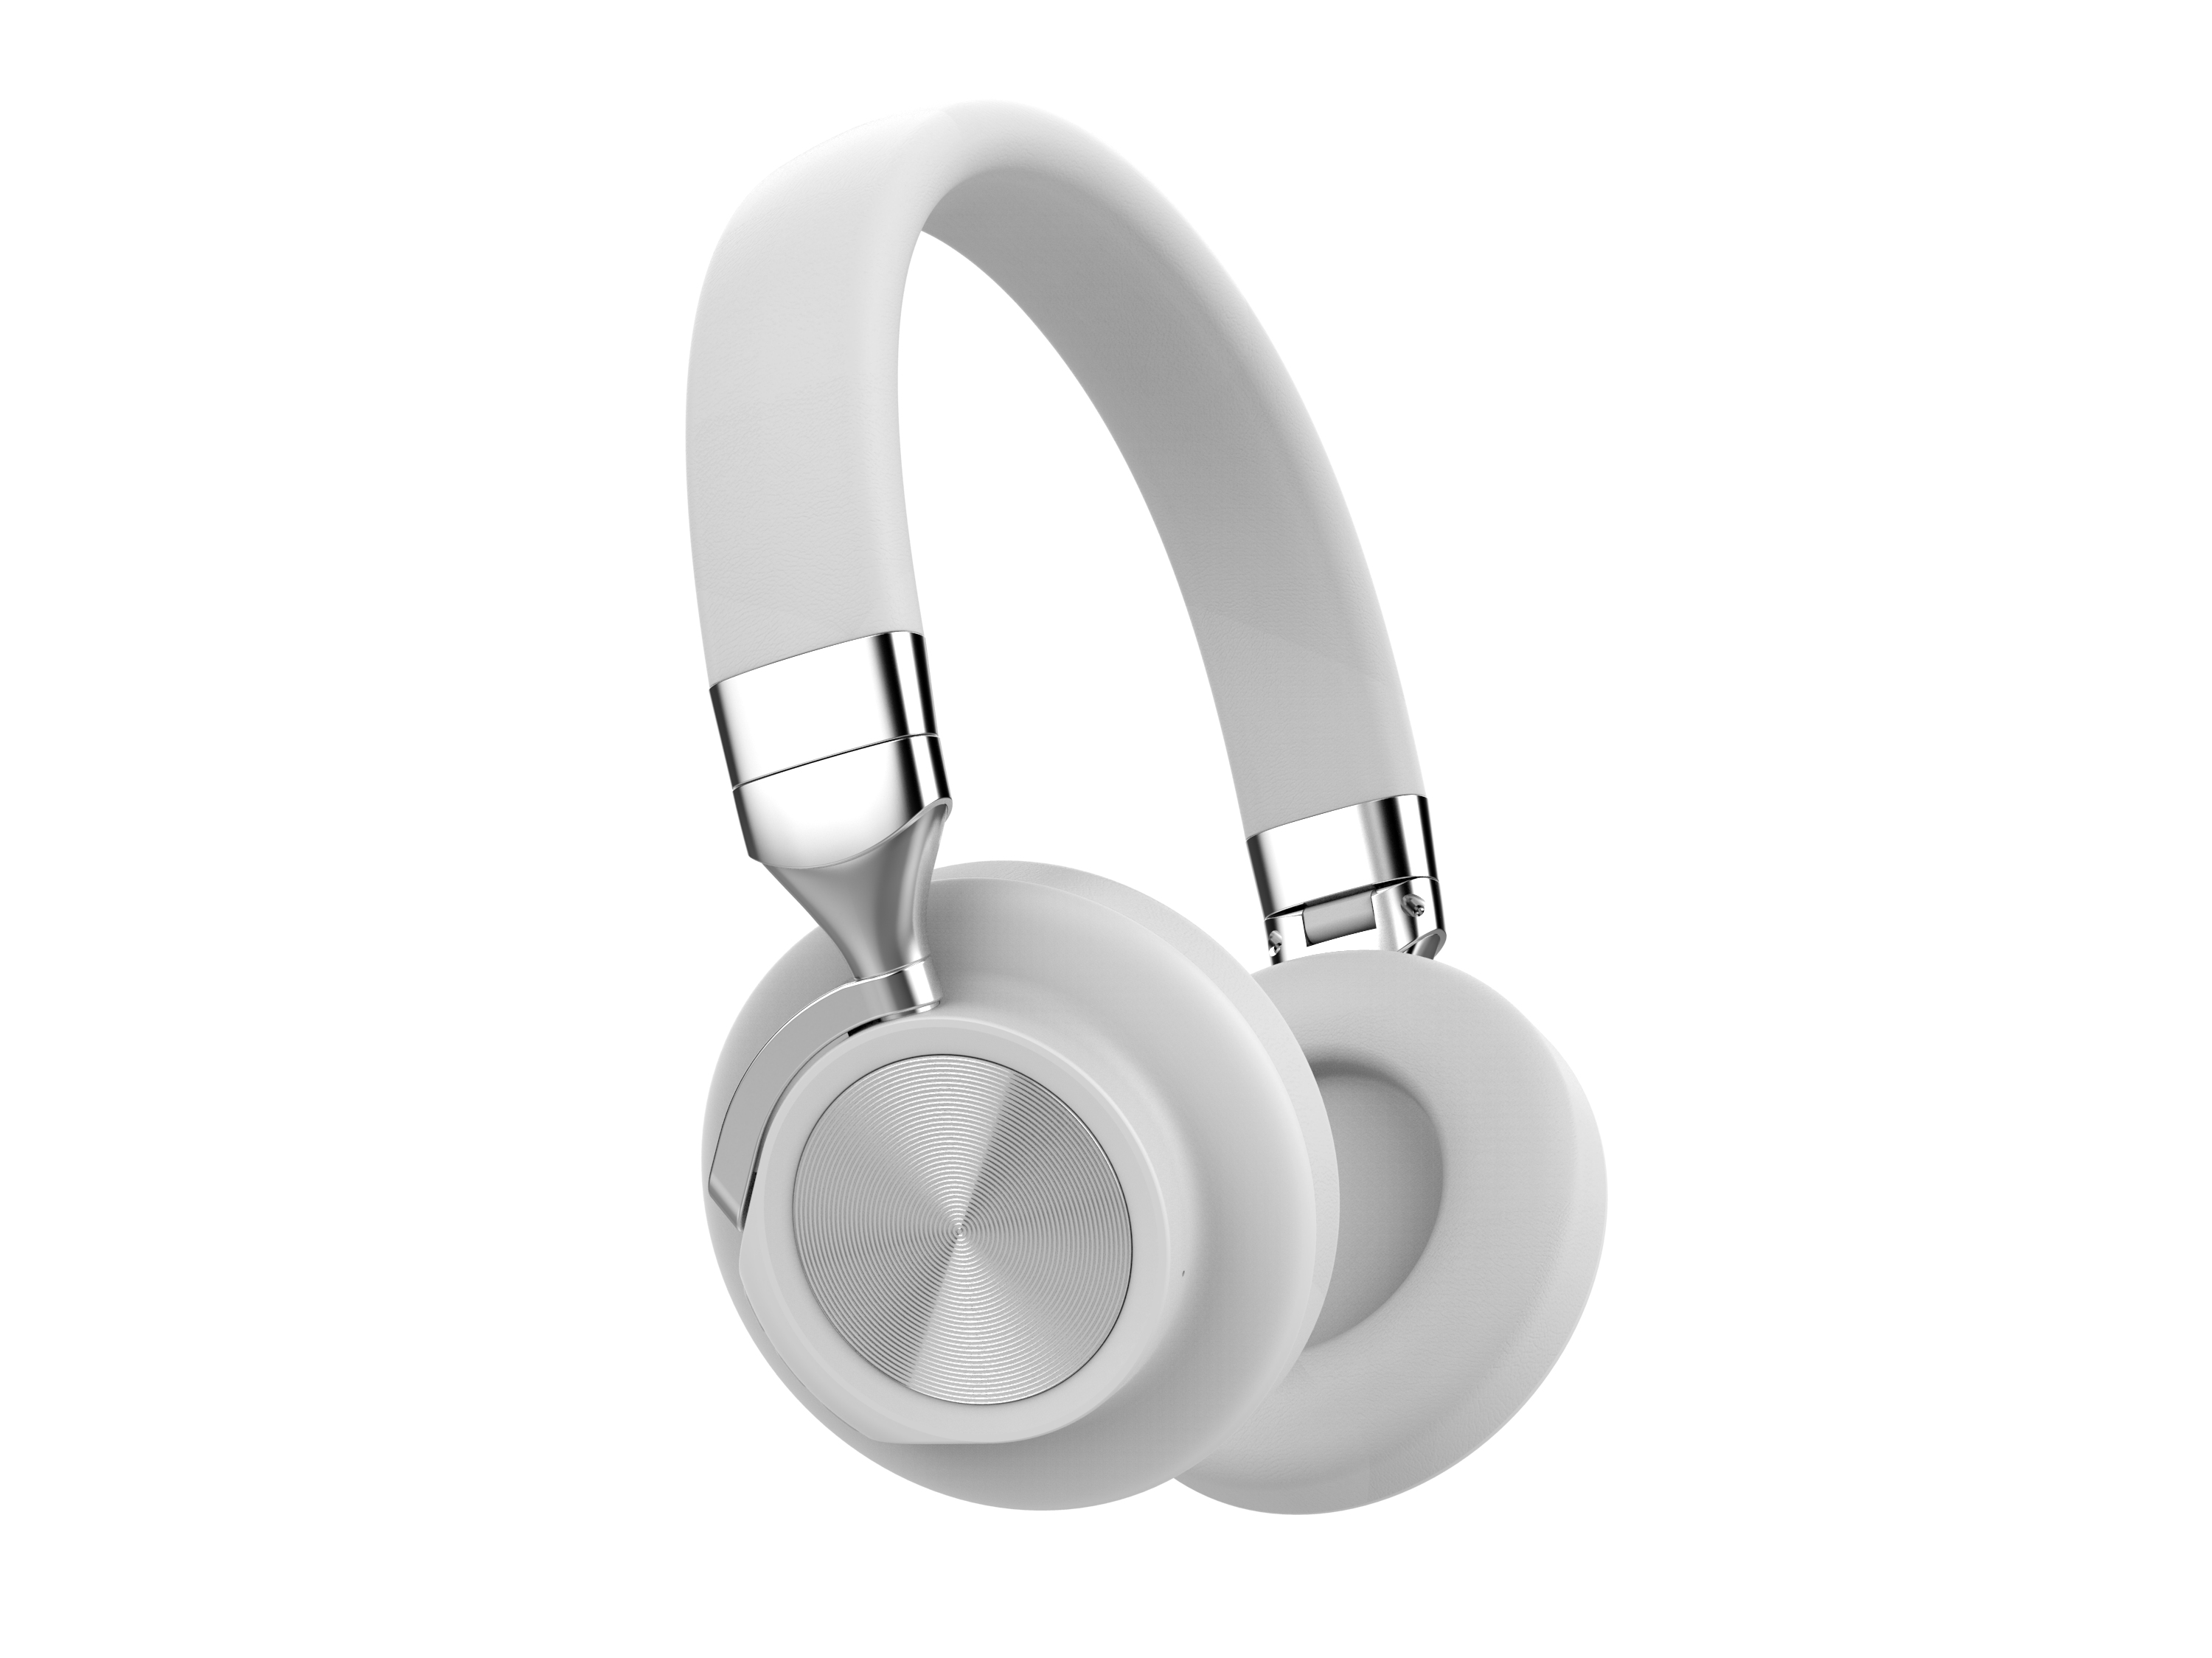 BL-136 Bluetooth headphones